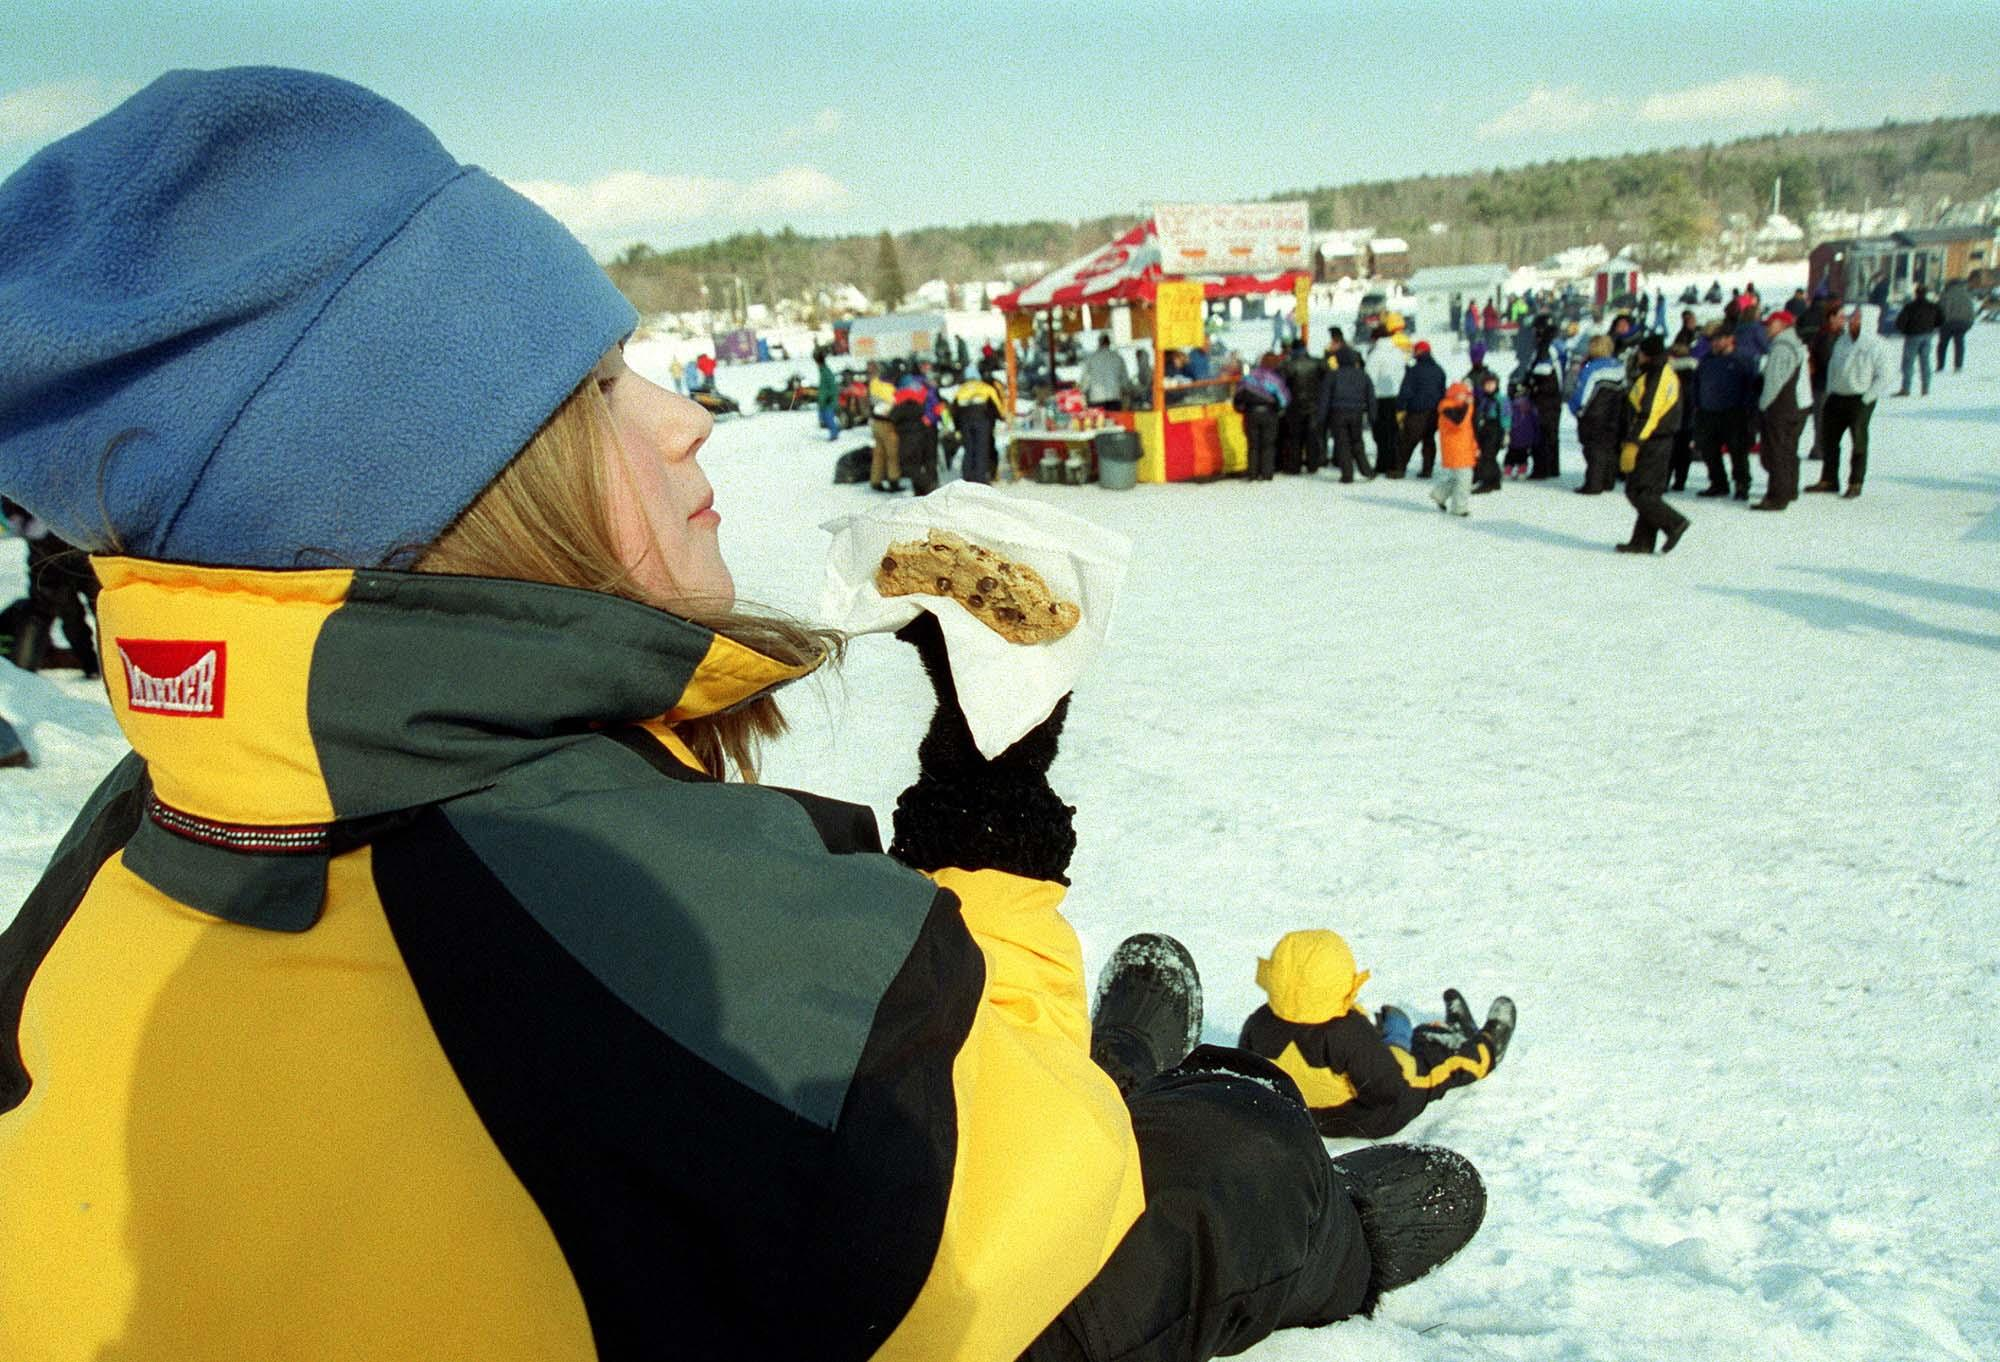 Ice fishing derby set to lure thousands to lakes region for Plenty of fish nh